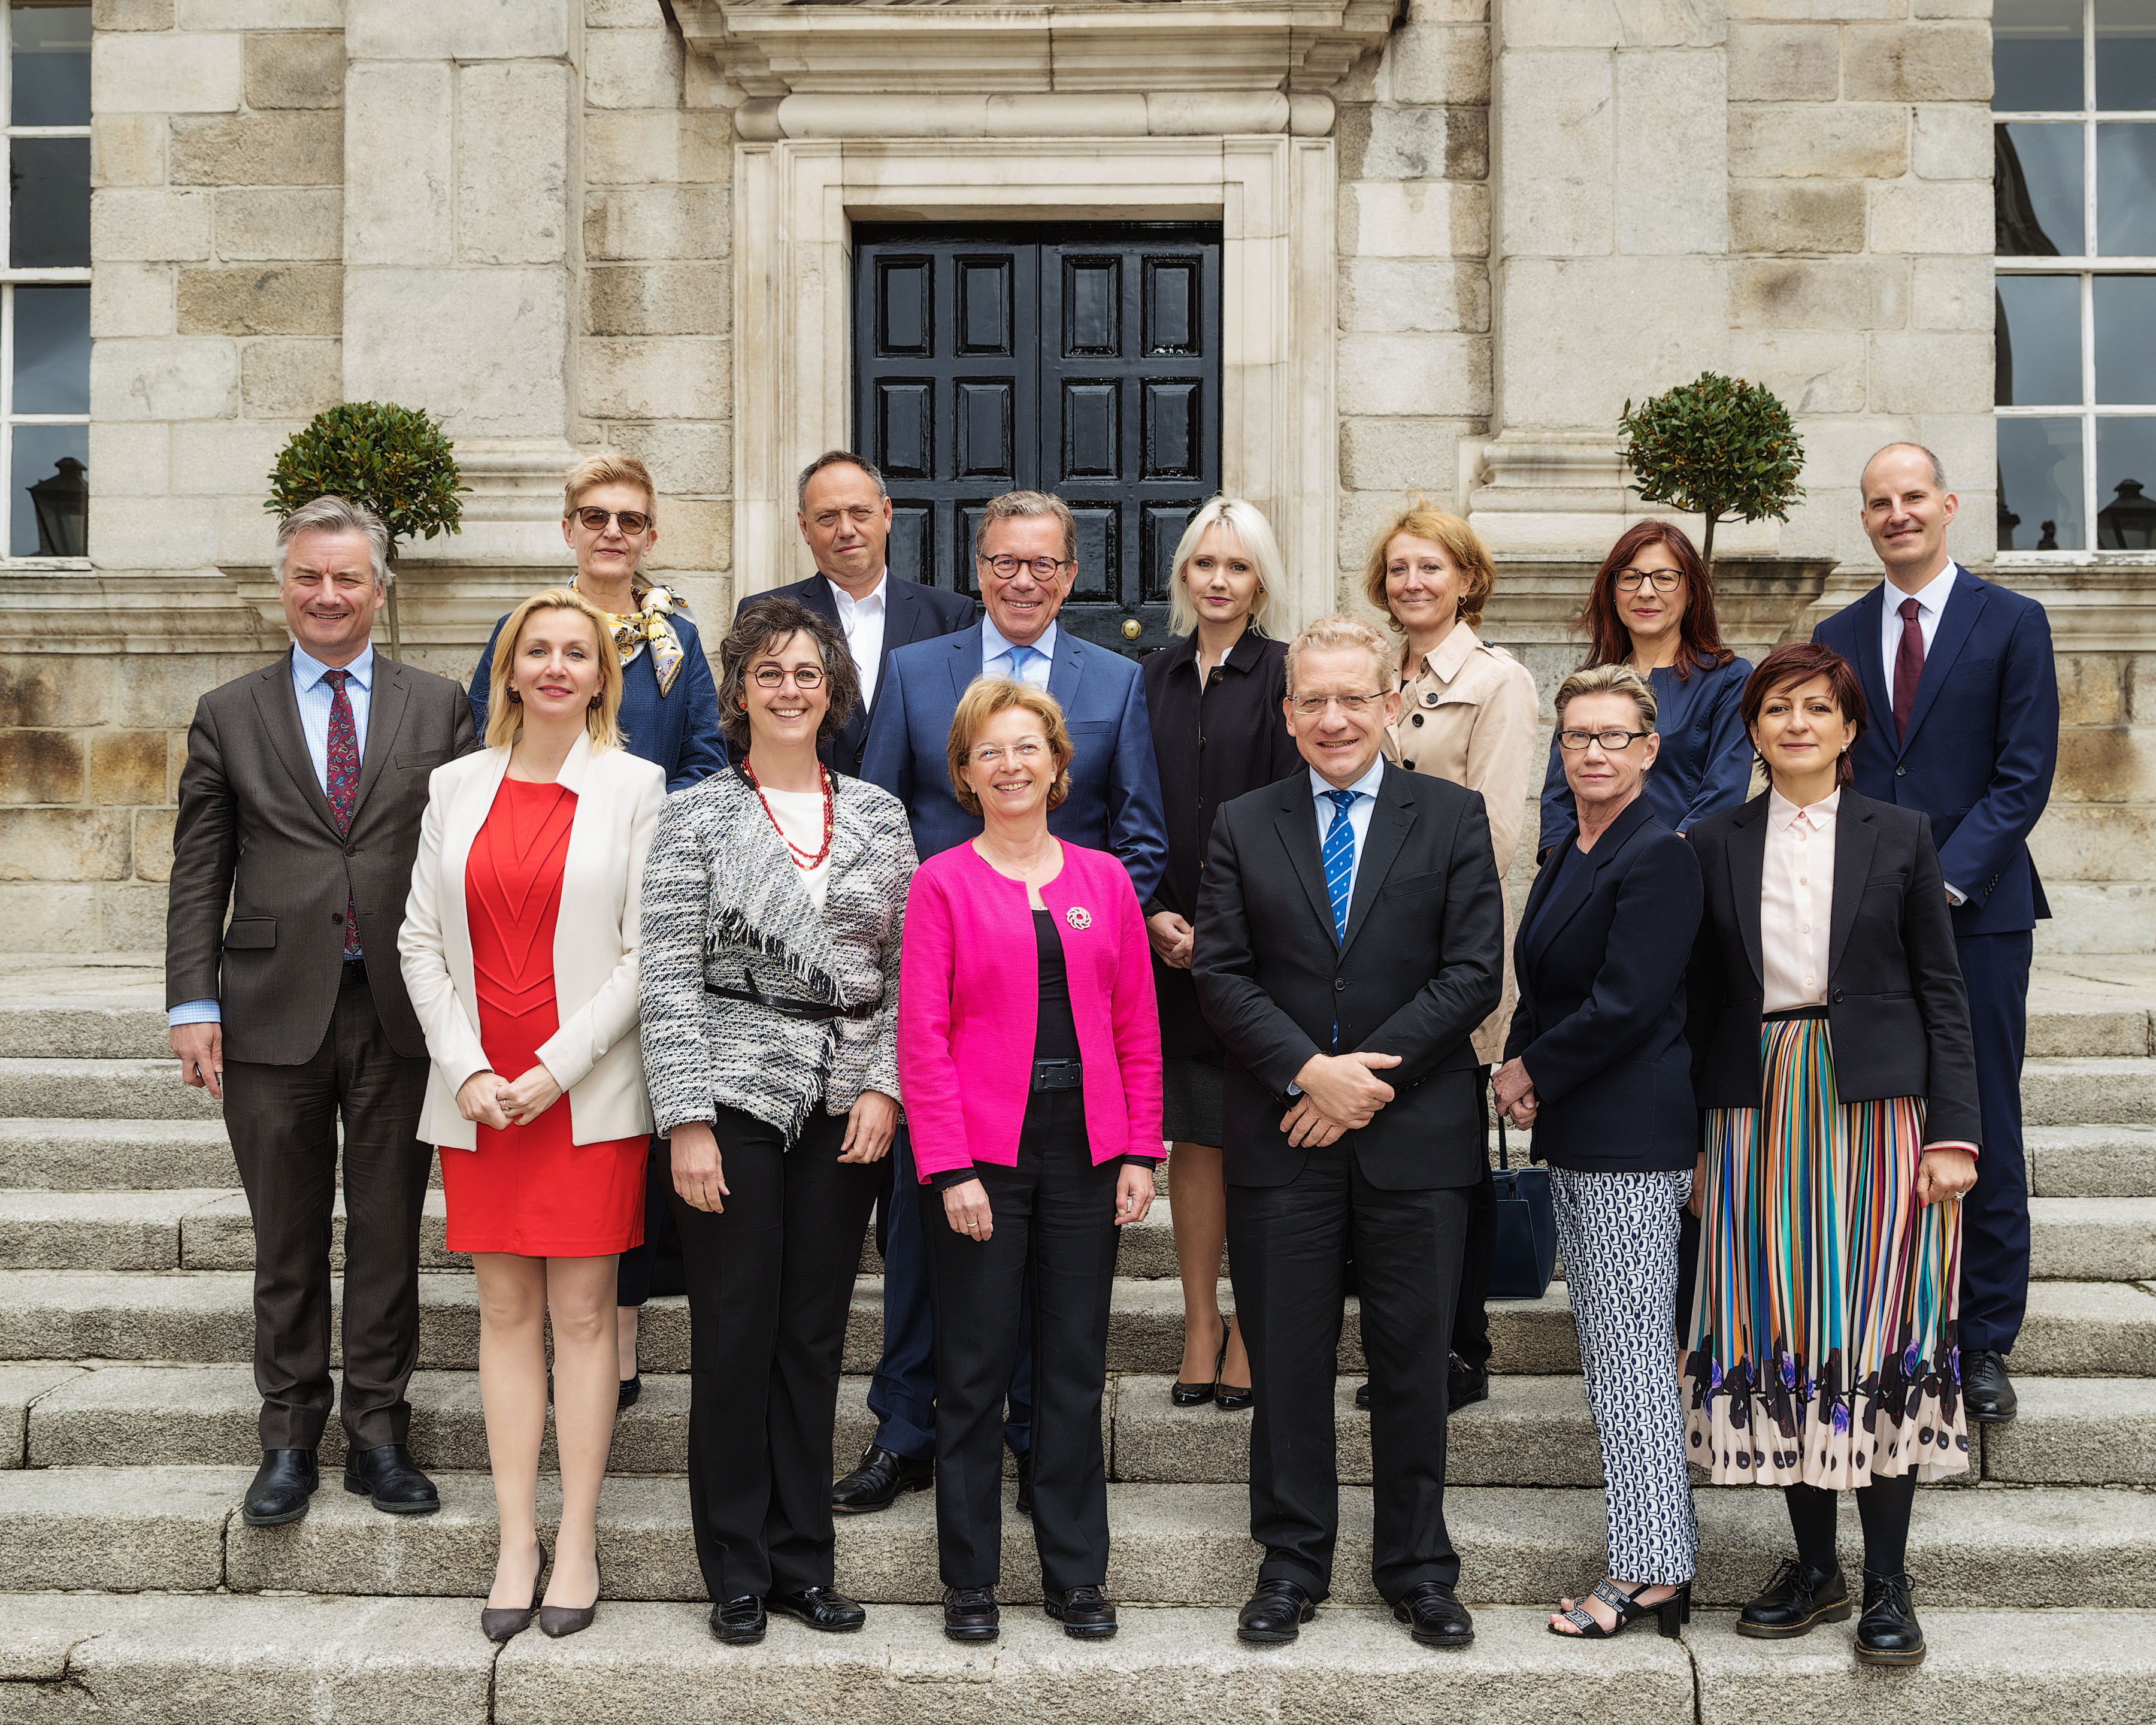 EIT Governing Board at Trinity College in Dublin - June 2019